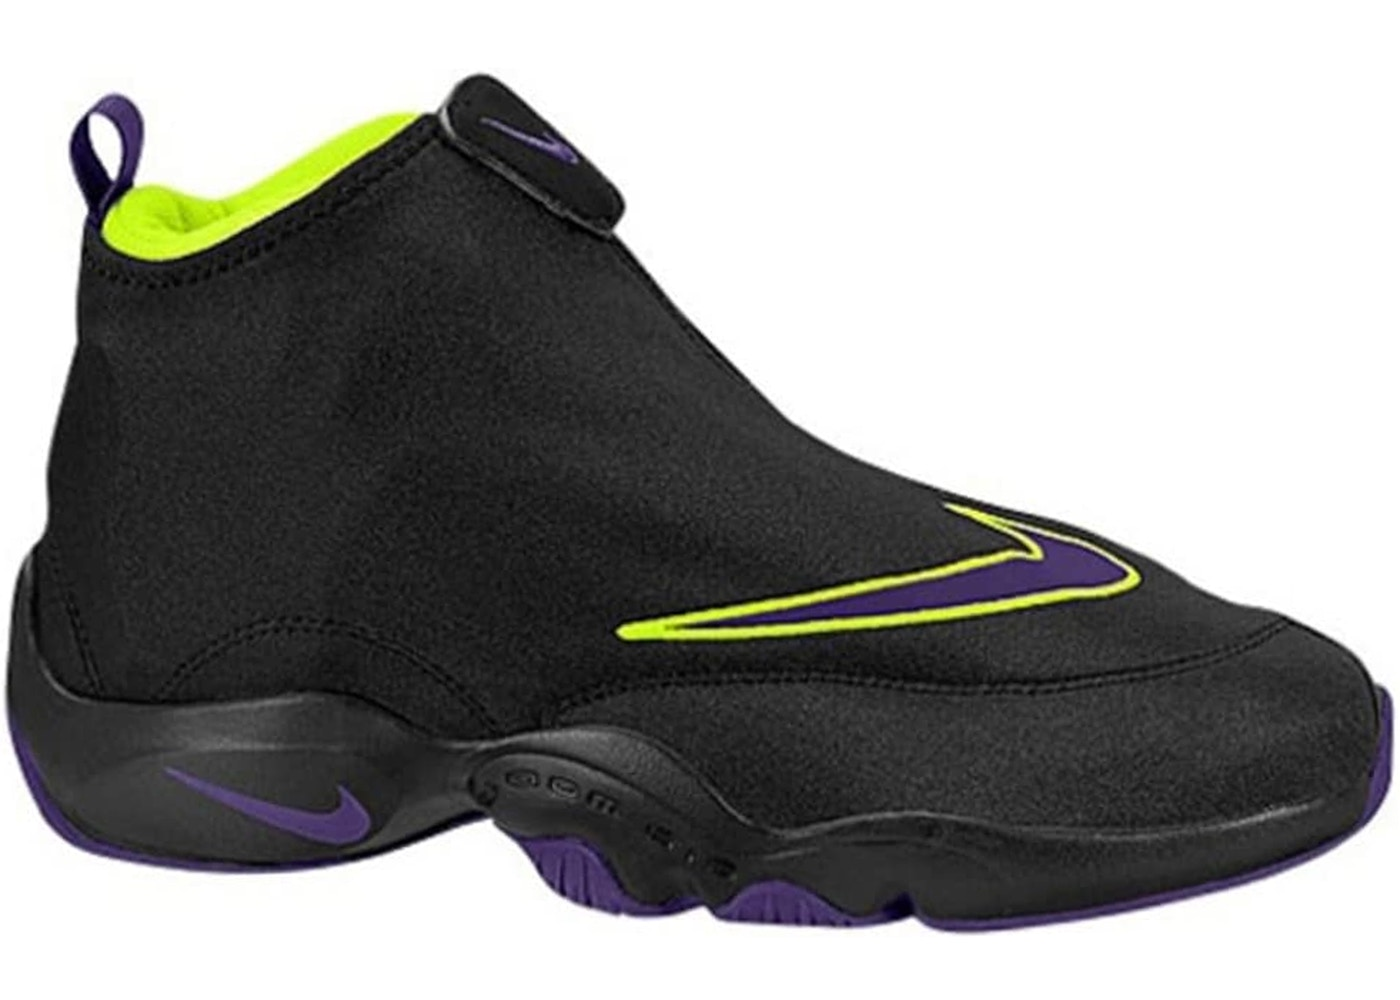 Nike Air Zoom Flight '98 The Glove Lakers - 616772-003